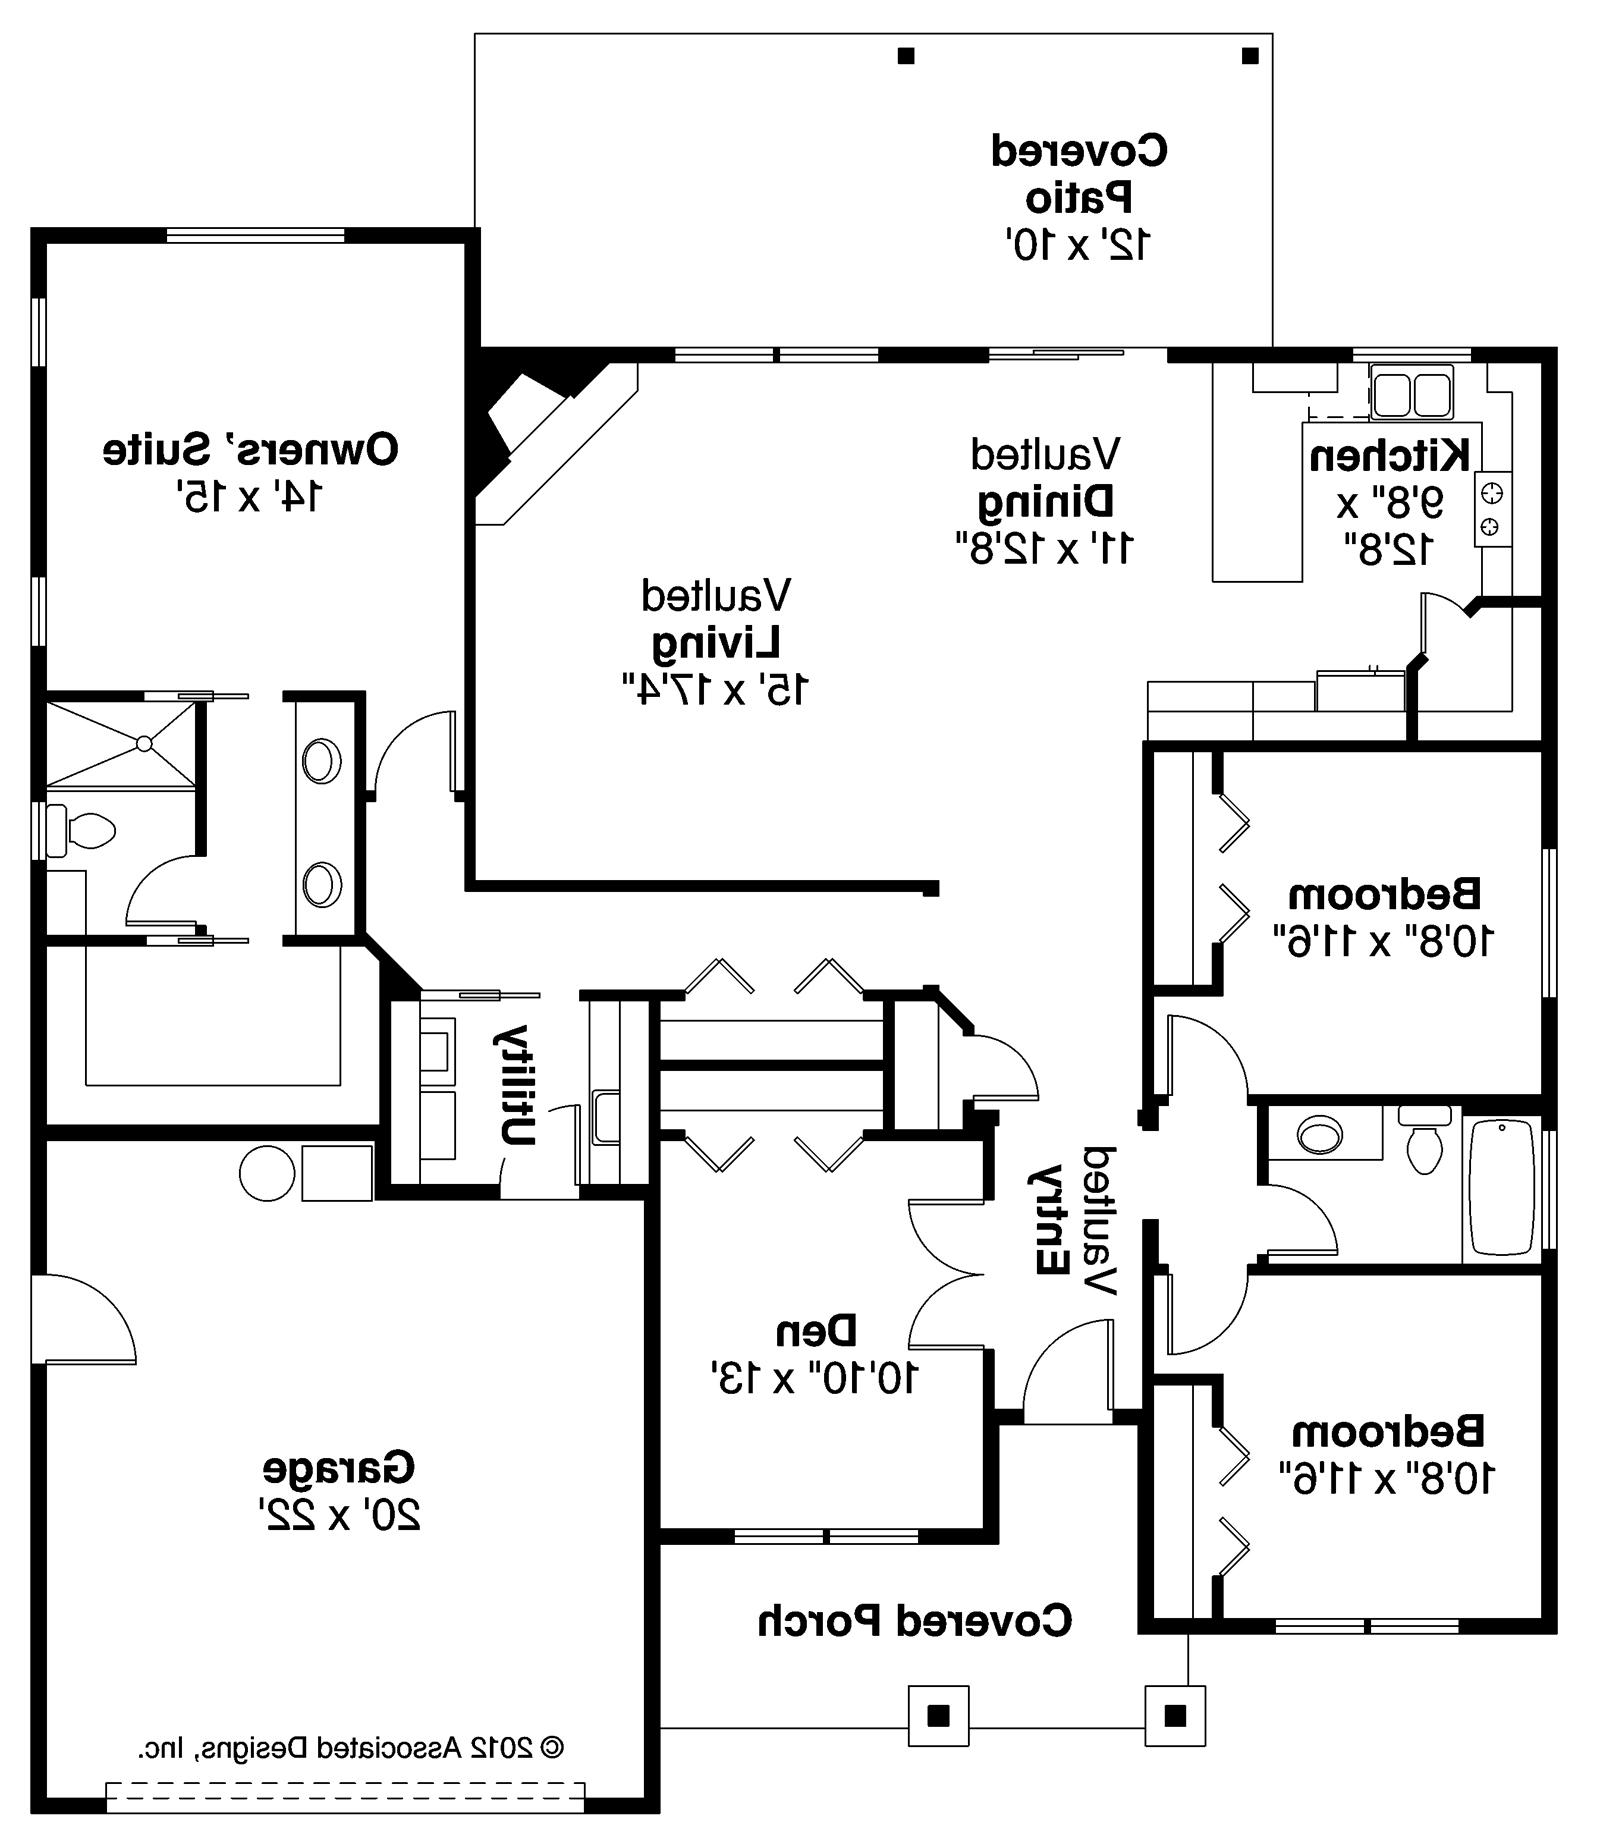 ranch house plans - whittaker 30-845